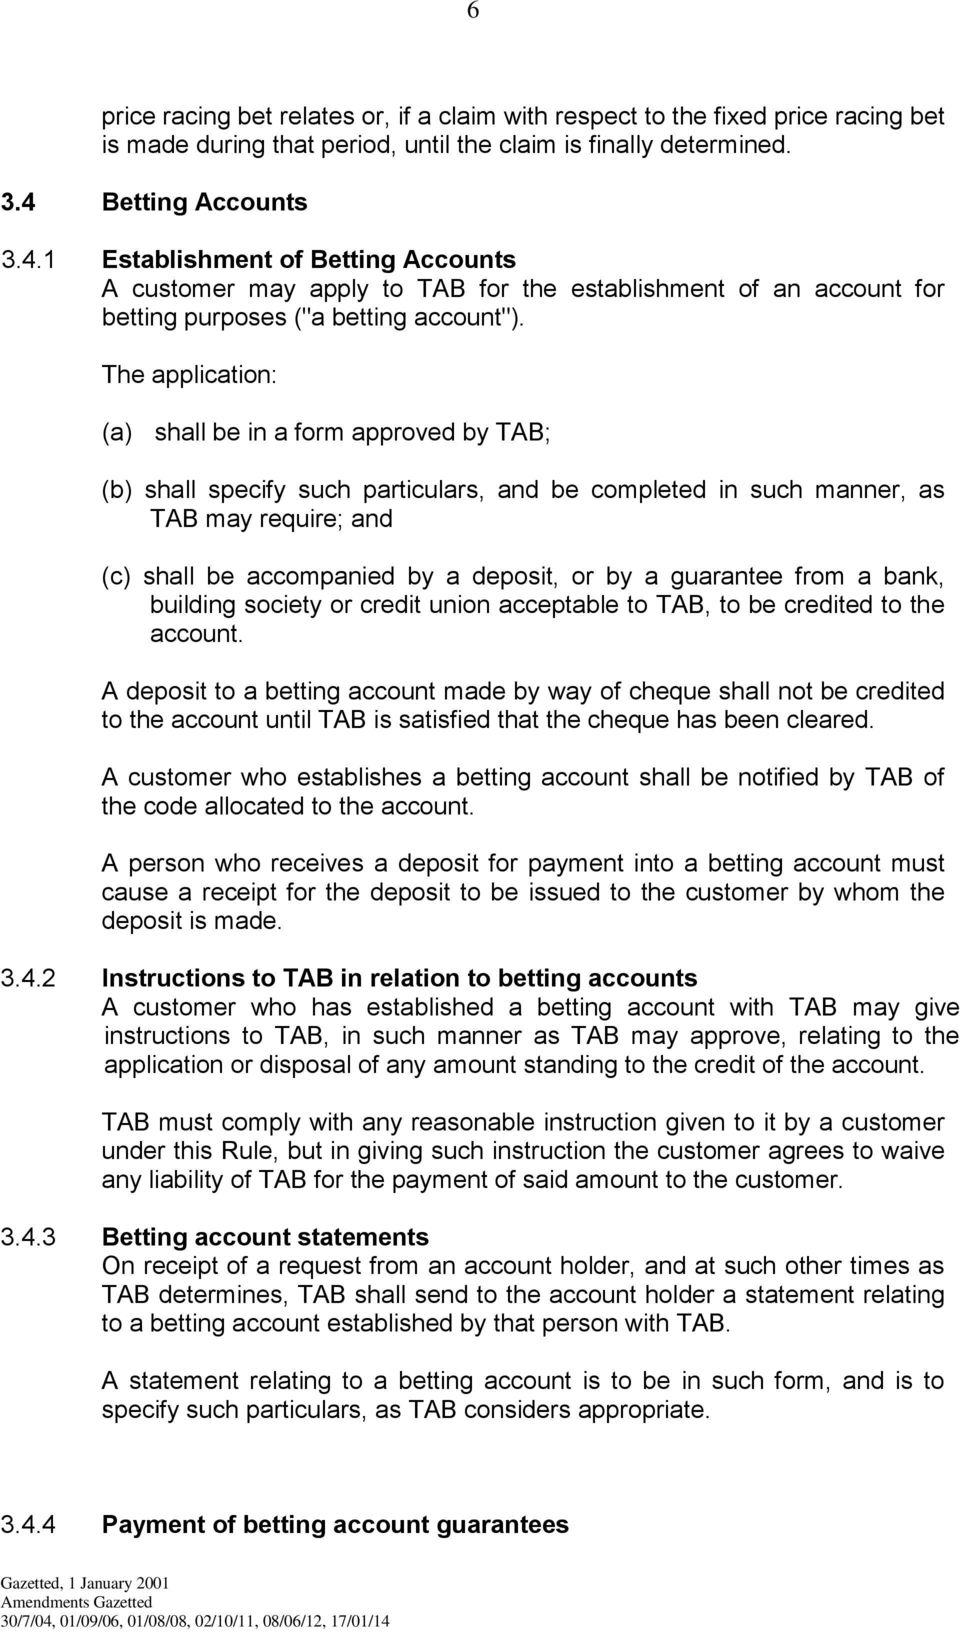 The application: (a) shall be in a form approved by TAB; (b) shall specify such particulars, and be completed in such manner, as TAB may require; and (c) shall be accompanied by a deposit, or by a